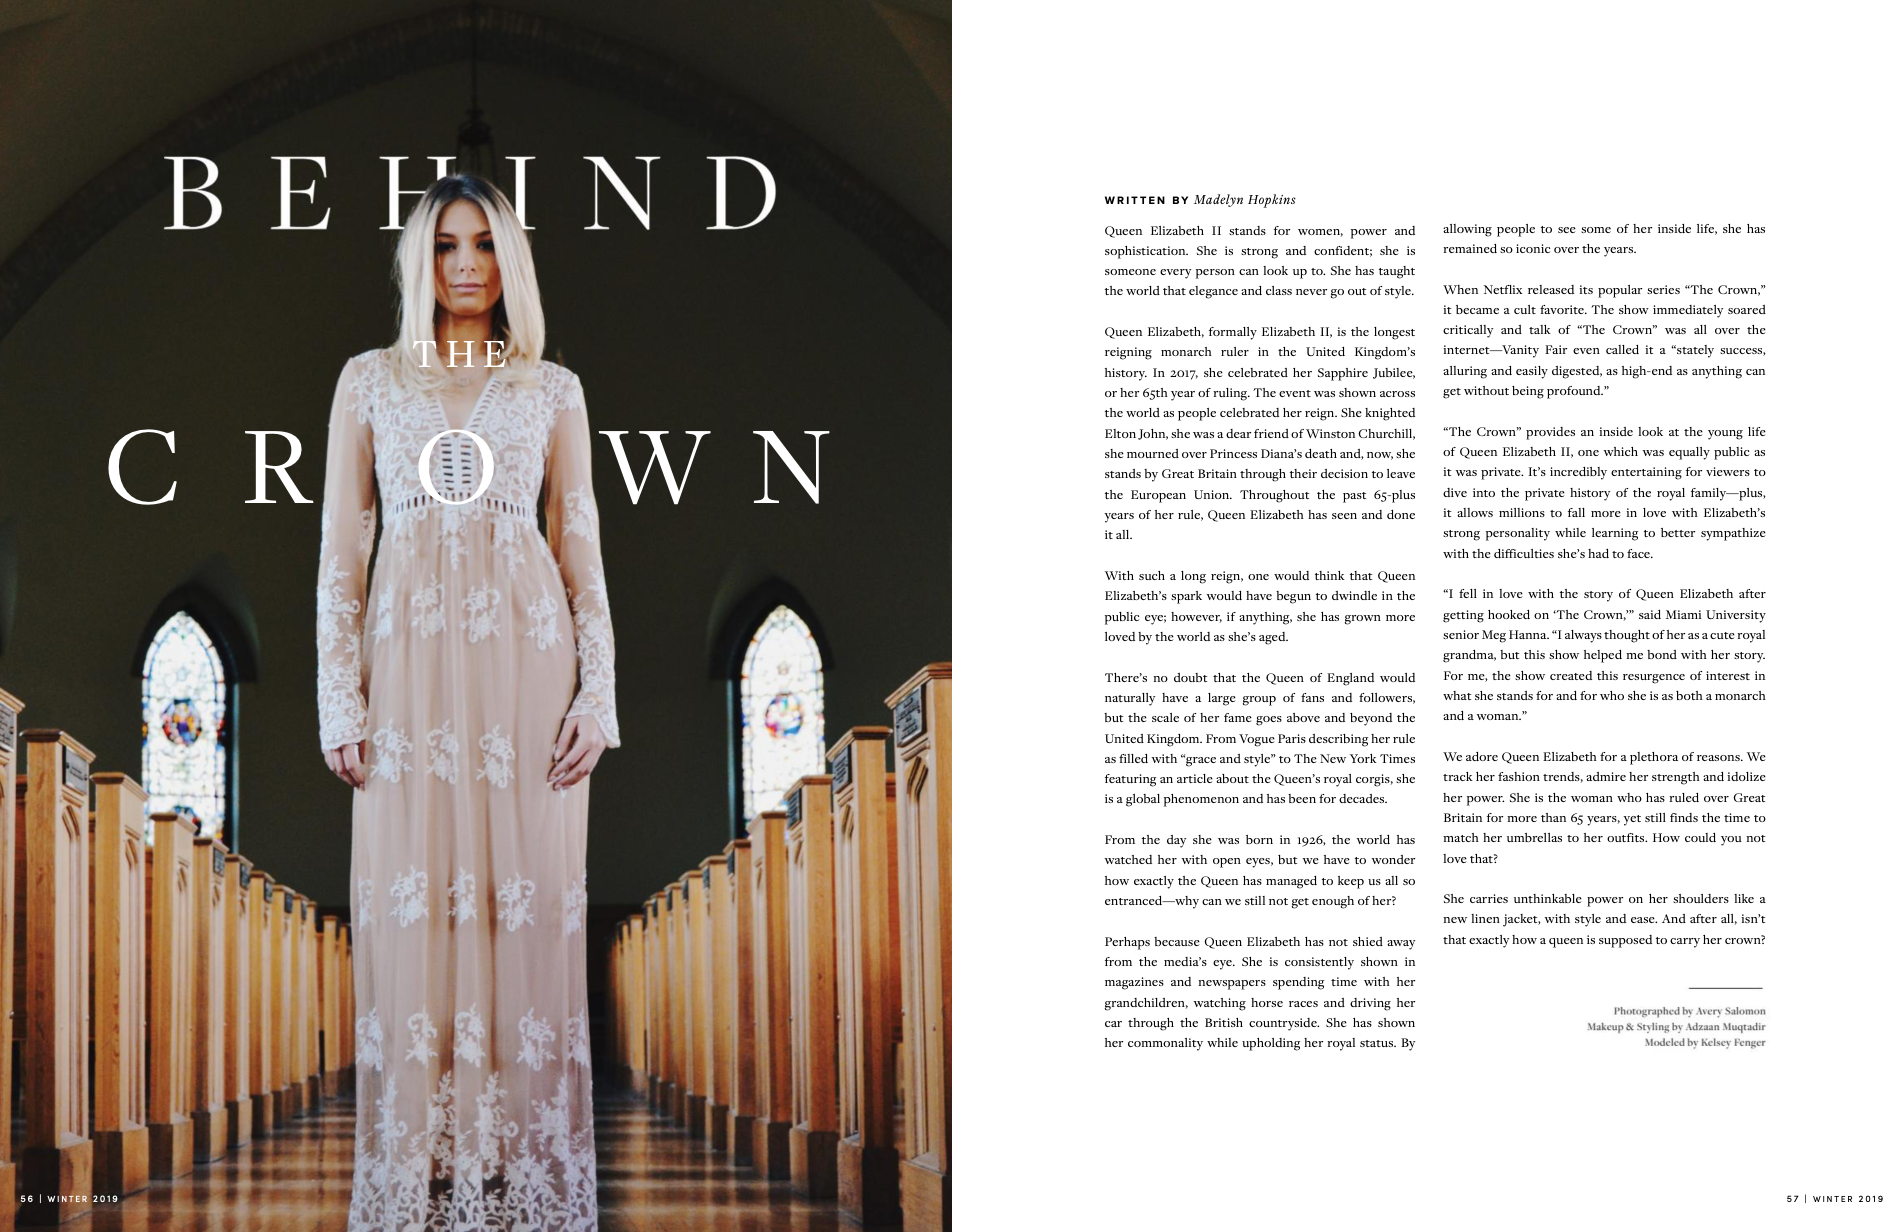 UP Magazine Winter 2018 Issue: Behind the Crown